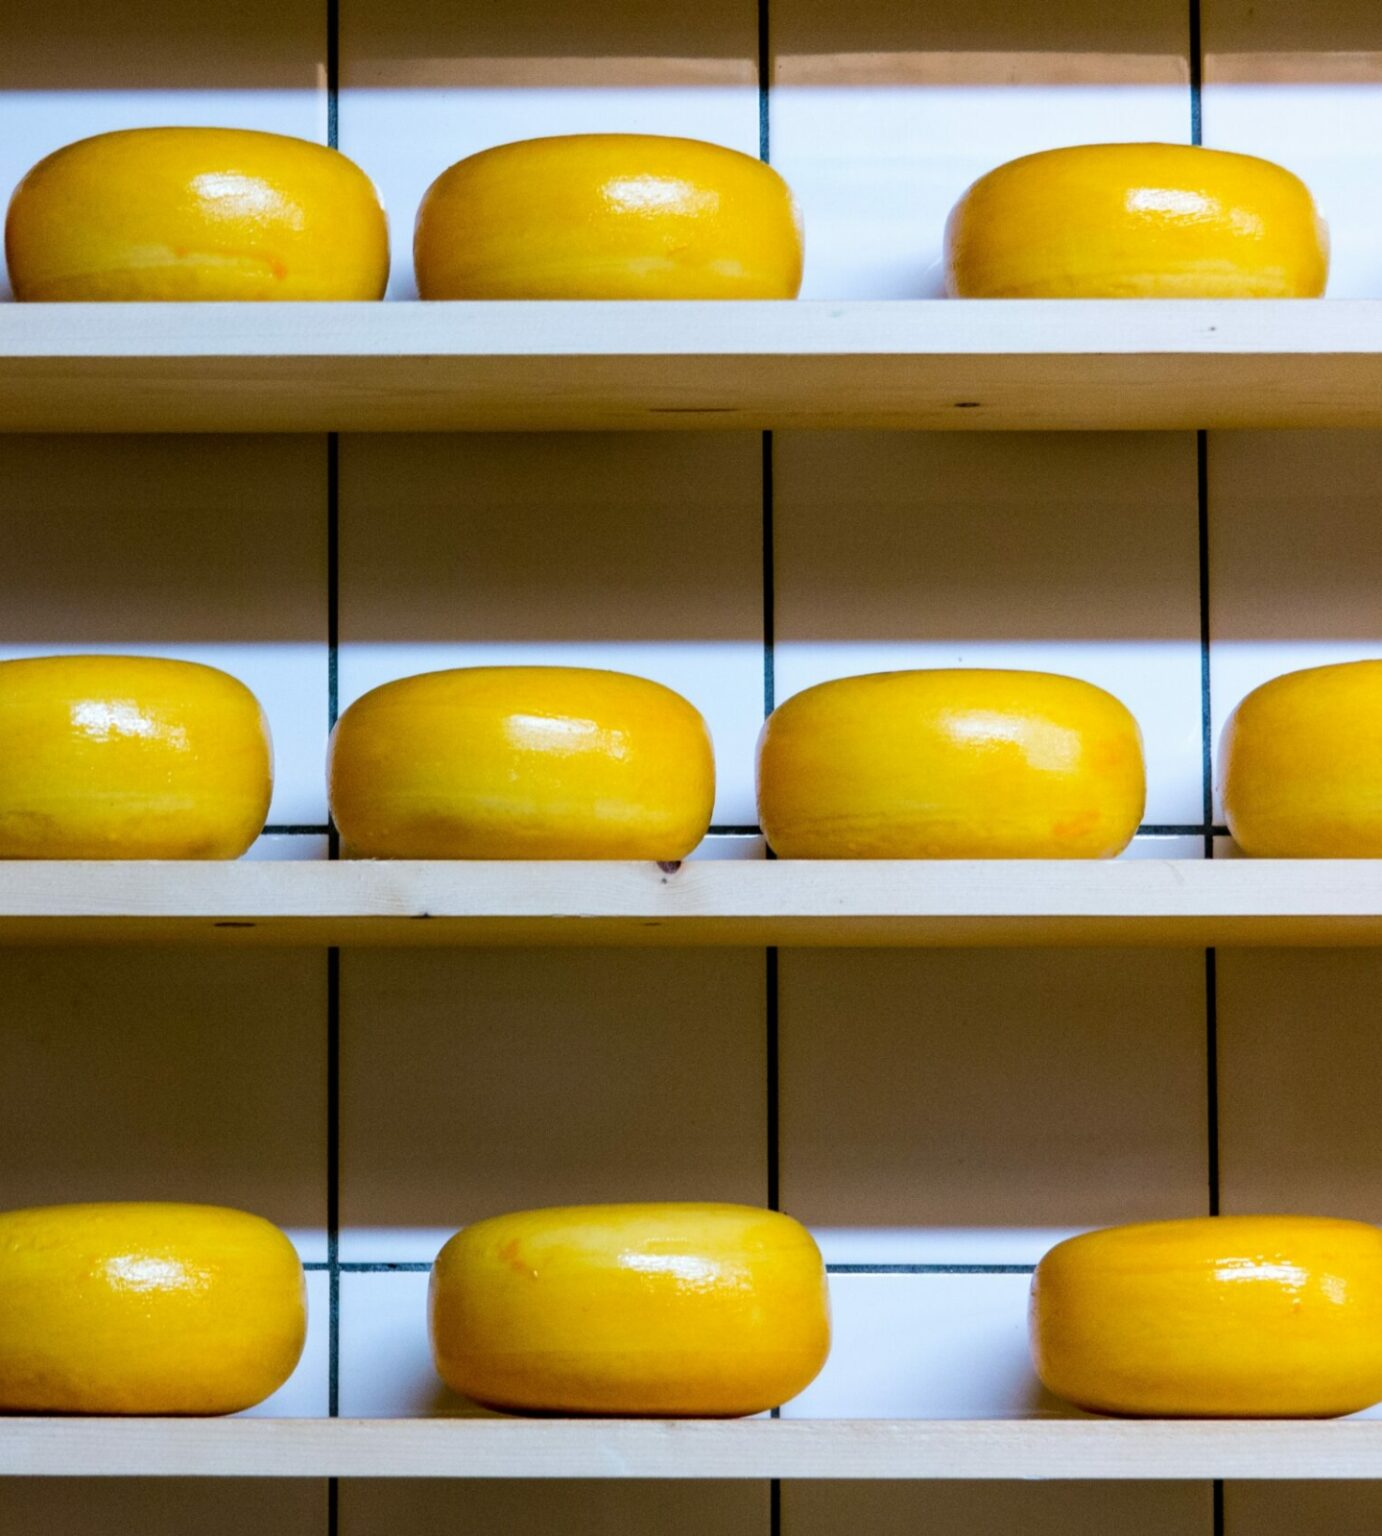 Wheels of cheese pantry essentials